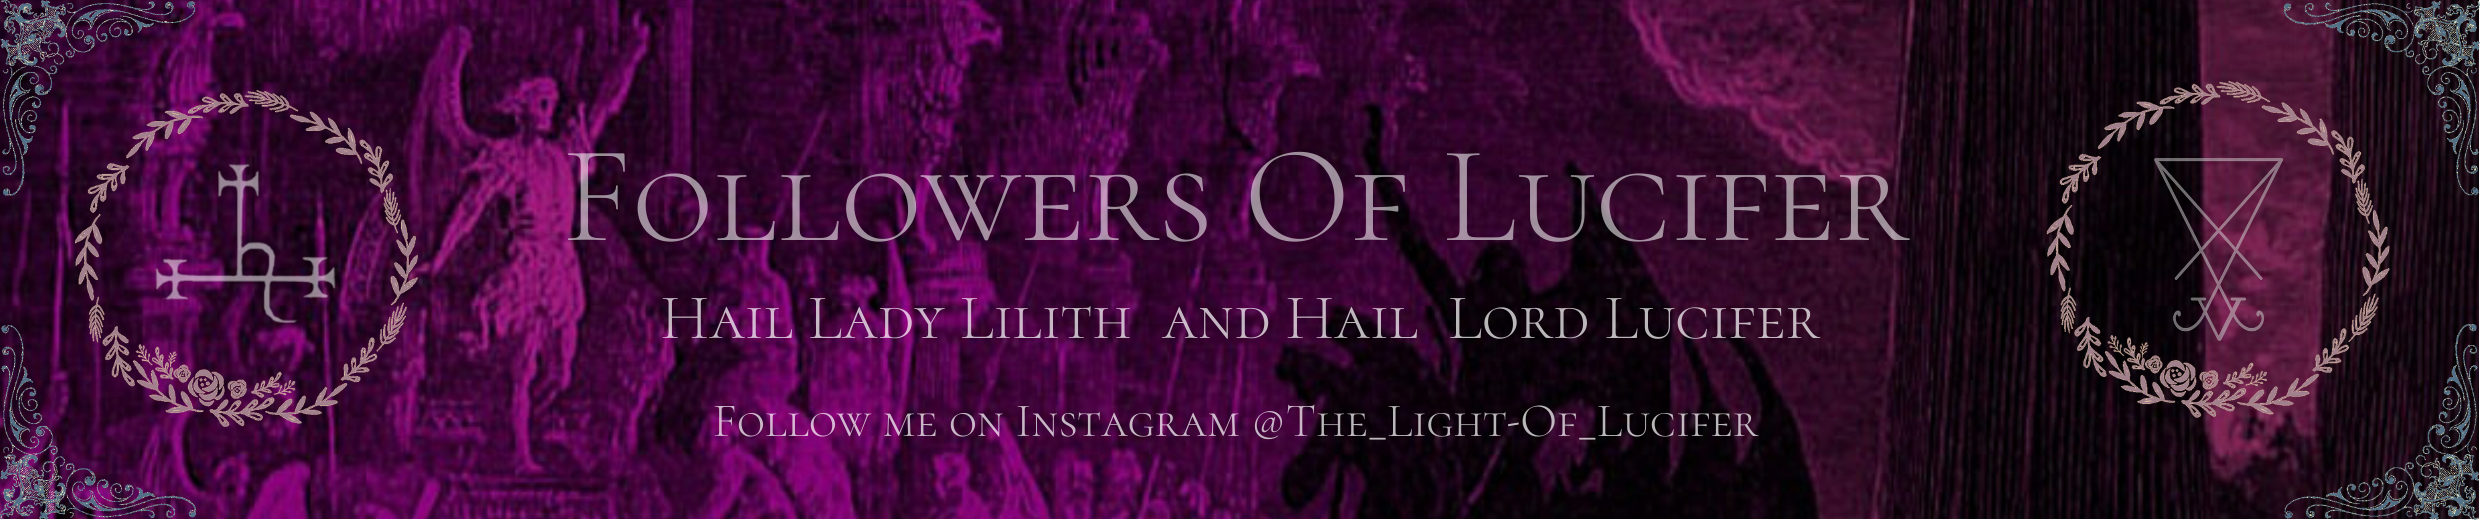 Followers of Lucifer and Education / Believers of Lucifer